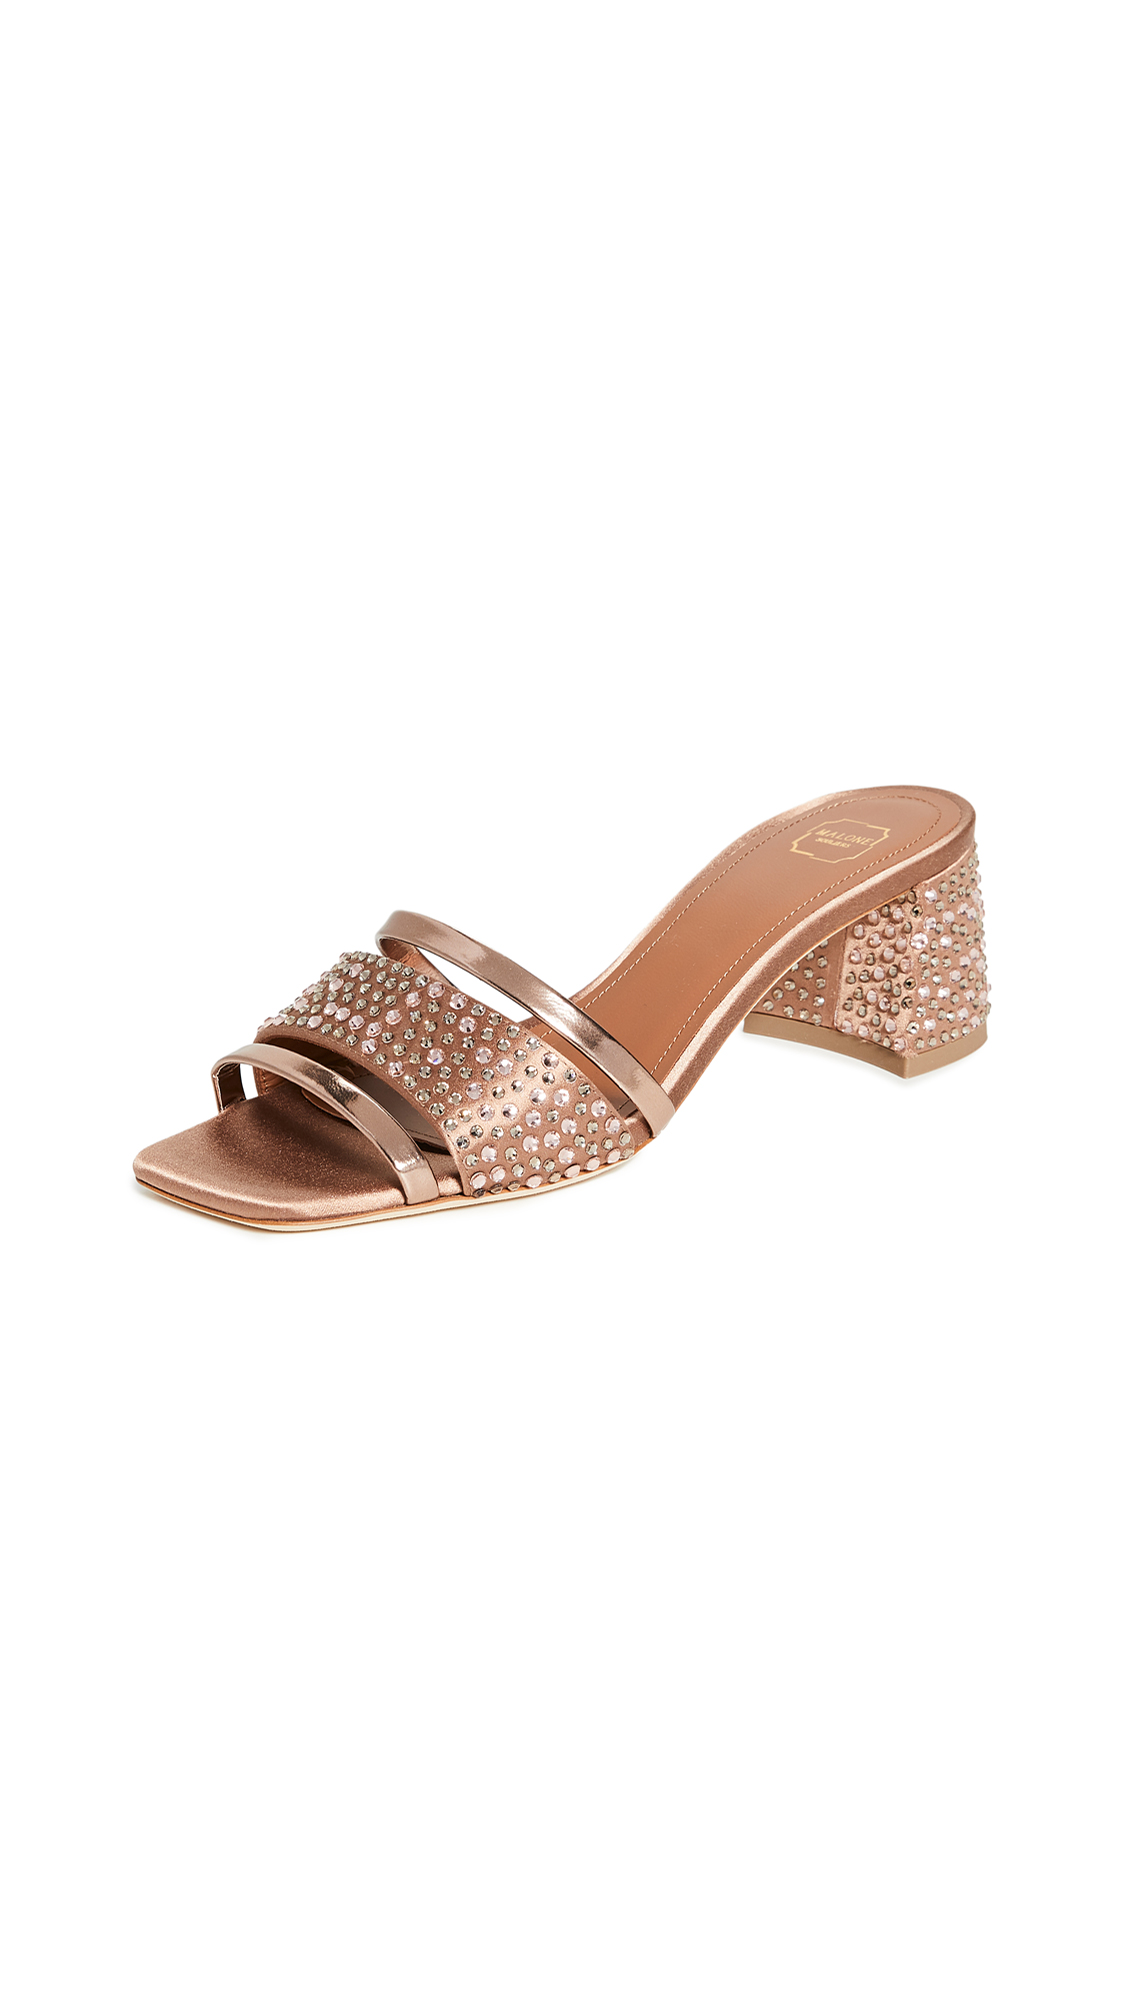 Malone Souliers Rosa Mules 45mm - 40% Off Sale